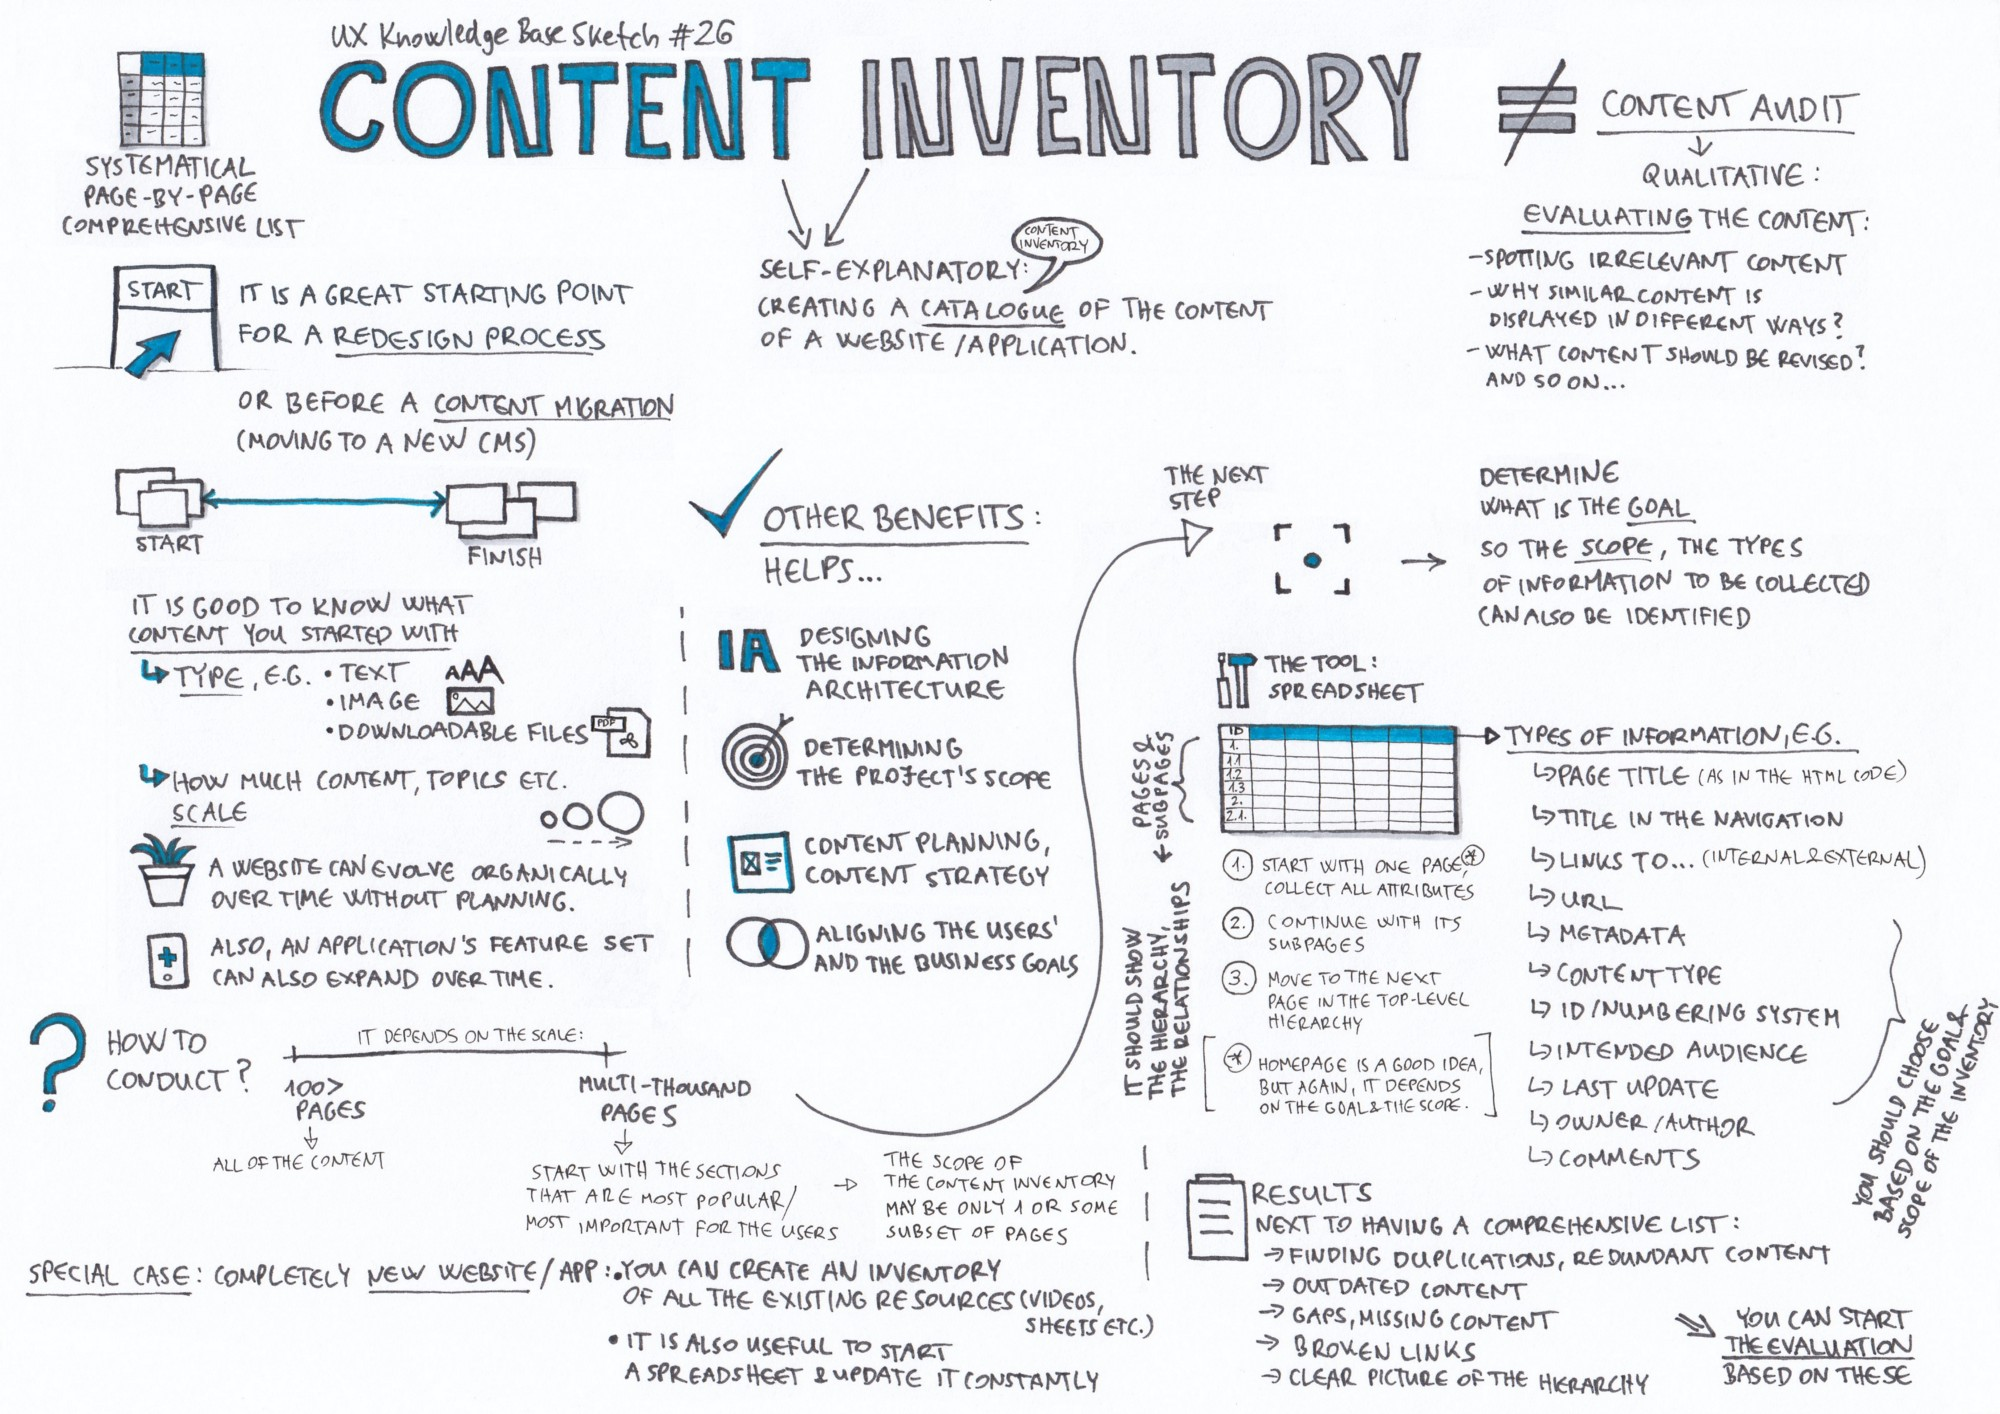 Content Inventory – UX Knowledge Base Sketch